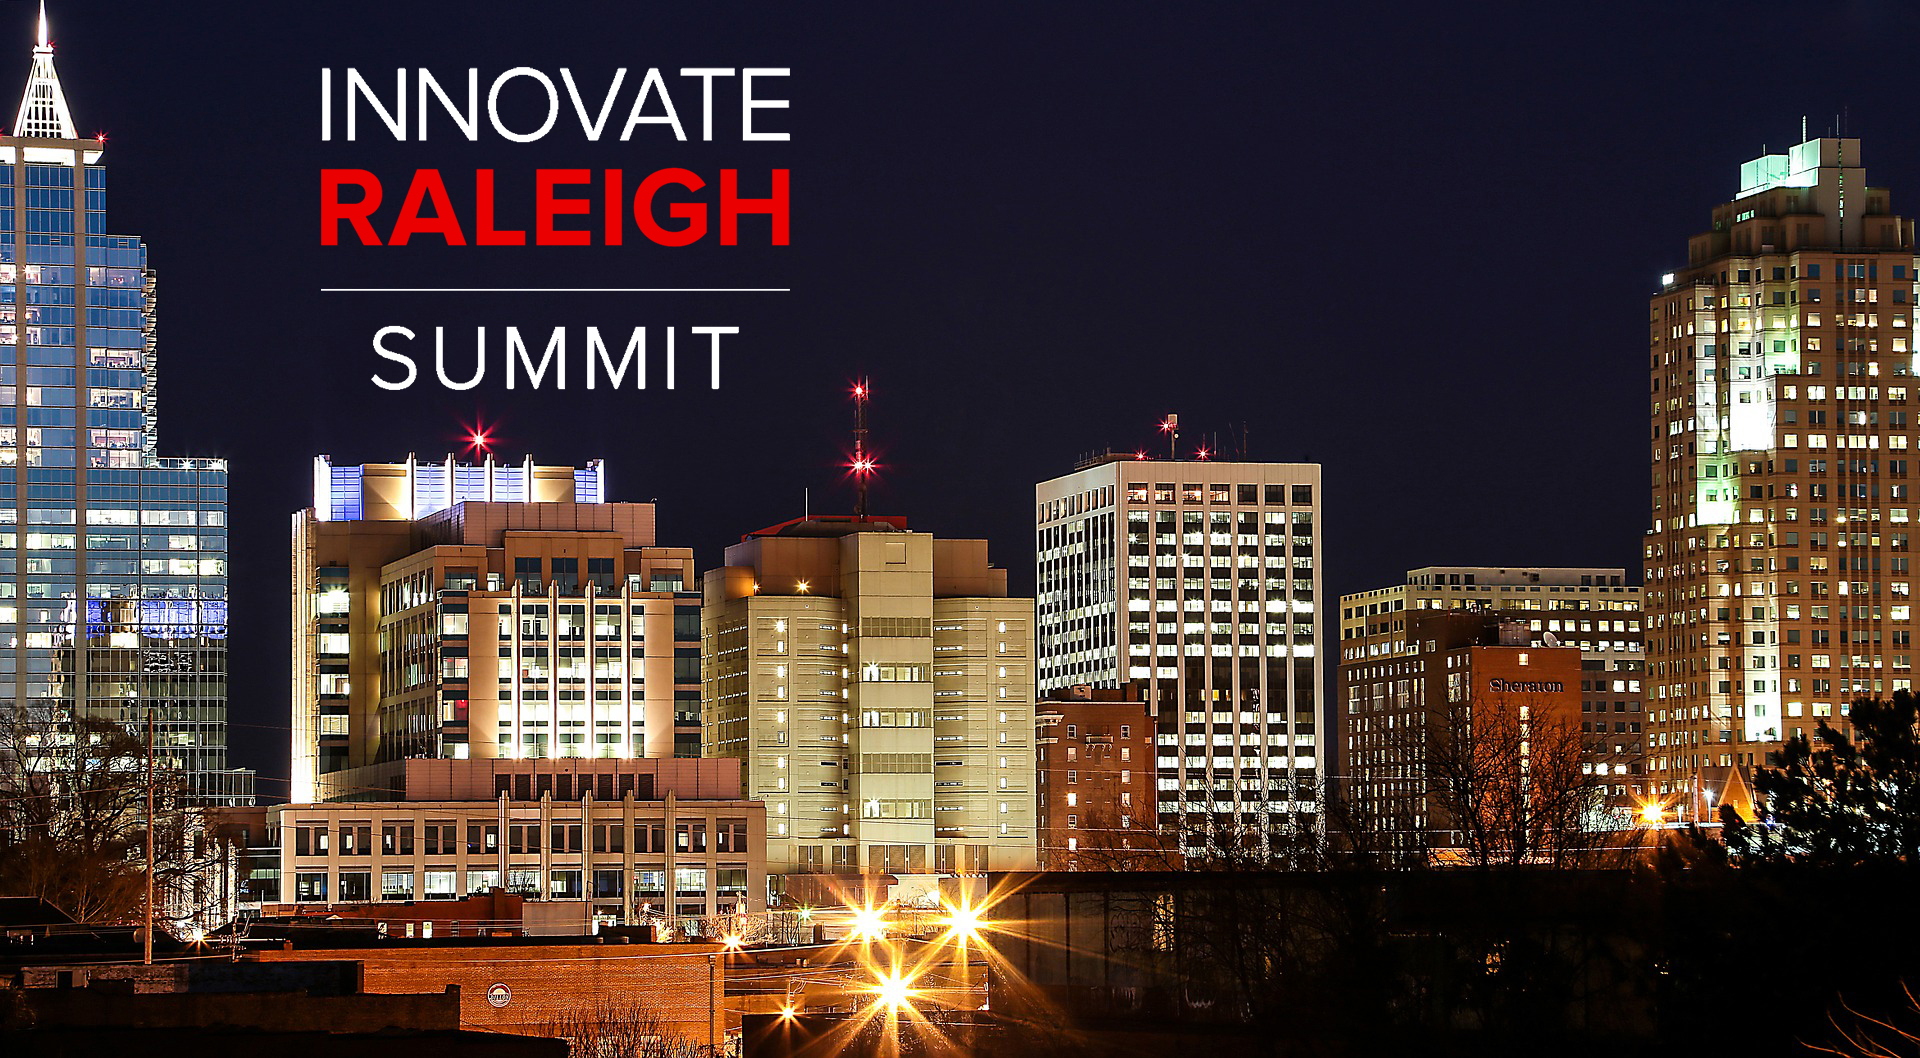 Innovate Raleigh Summit